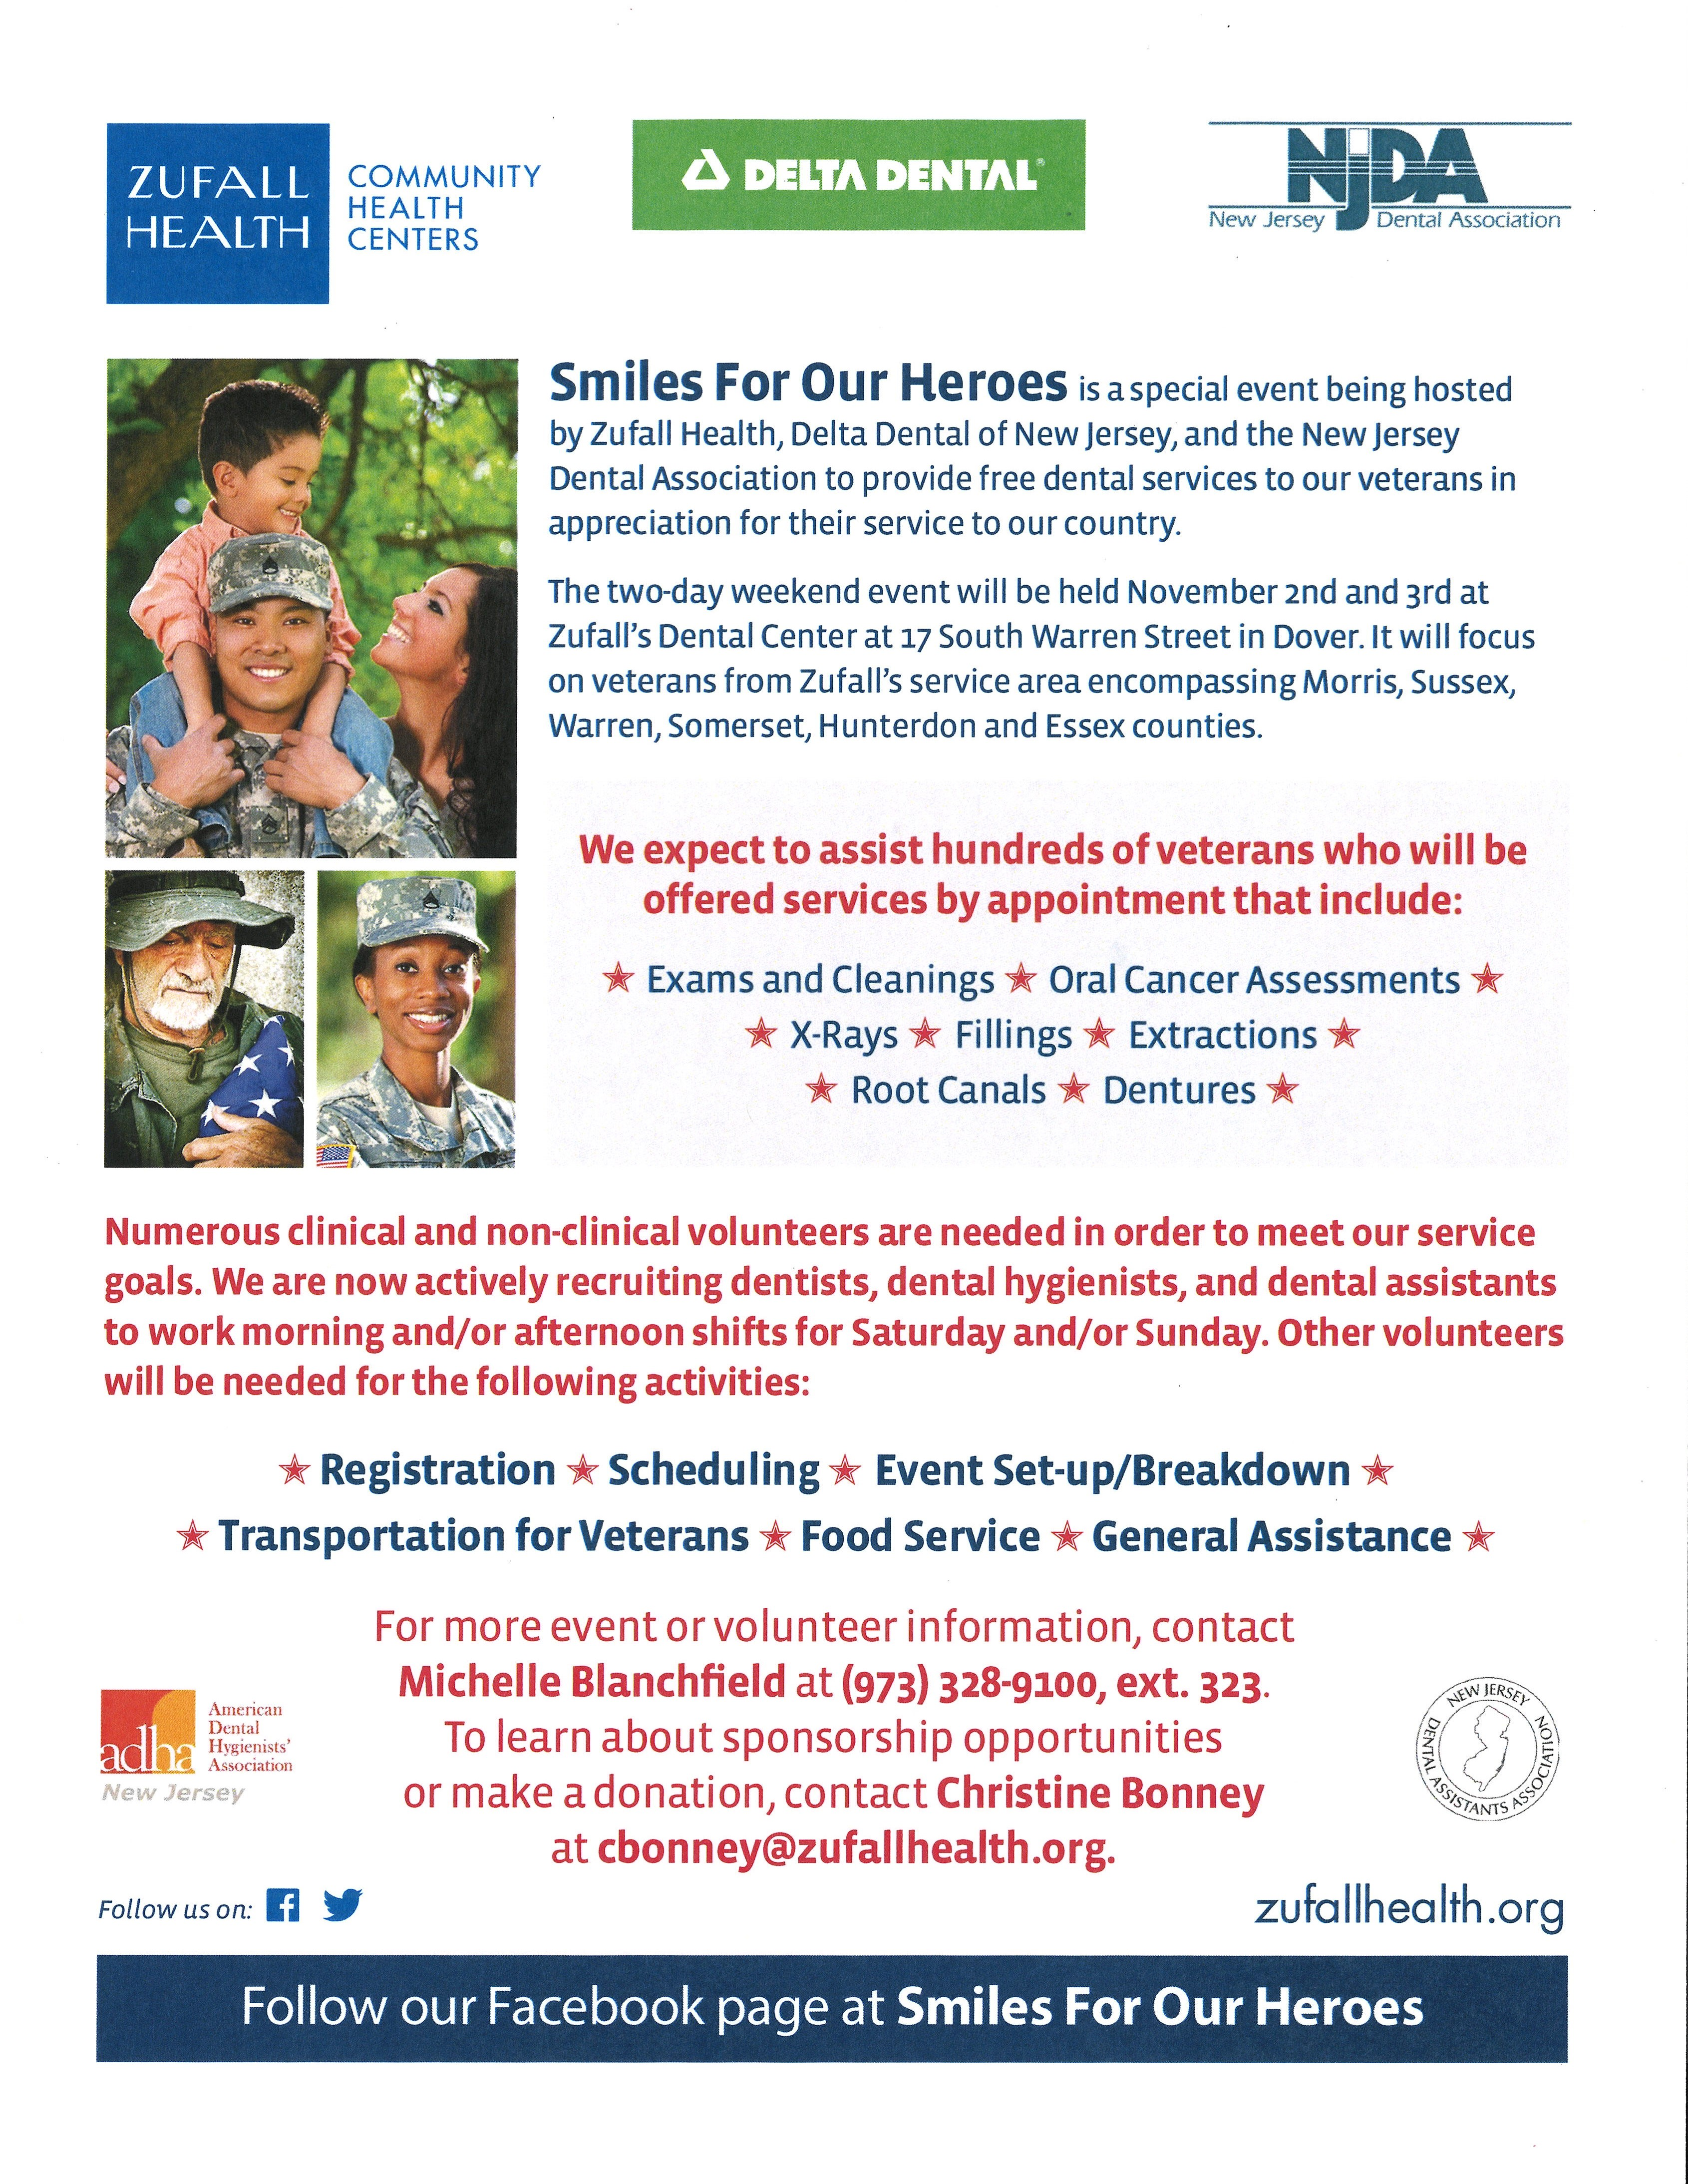 Flyer for Smiles for Our Heroes veterans dental event to be held on November 2 and 3.